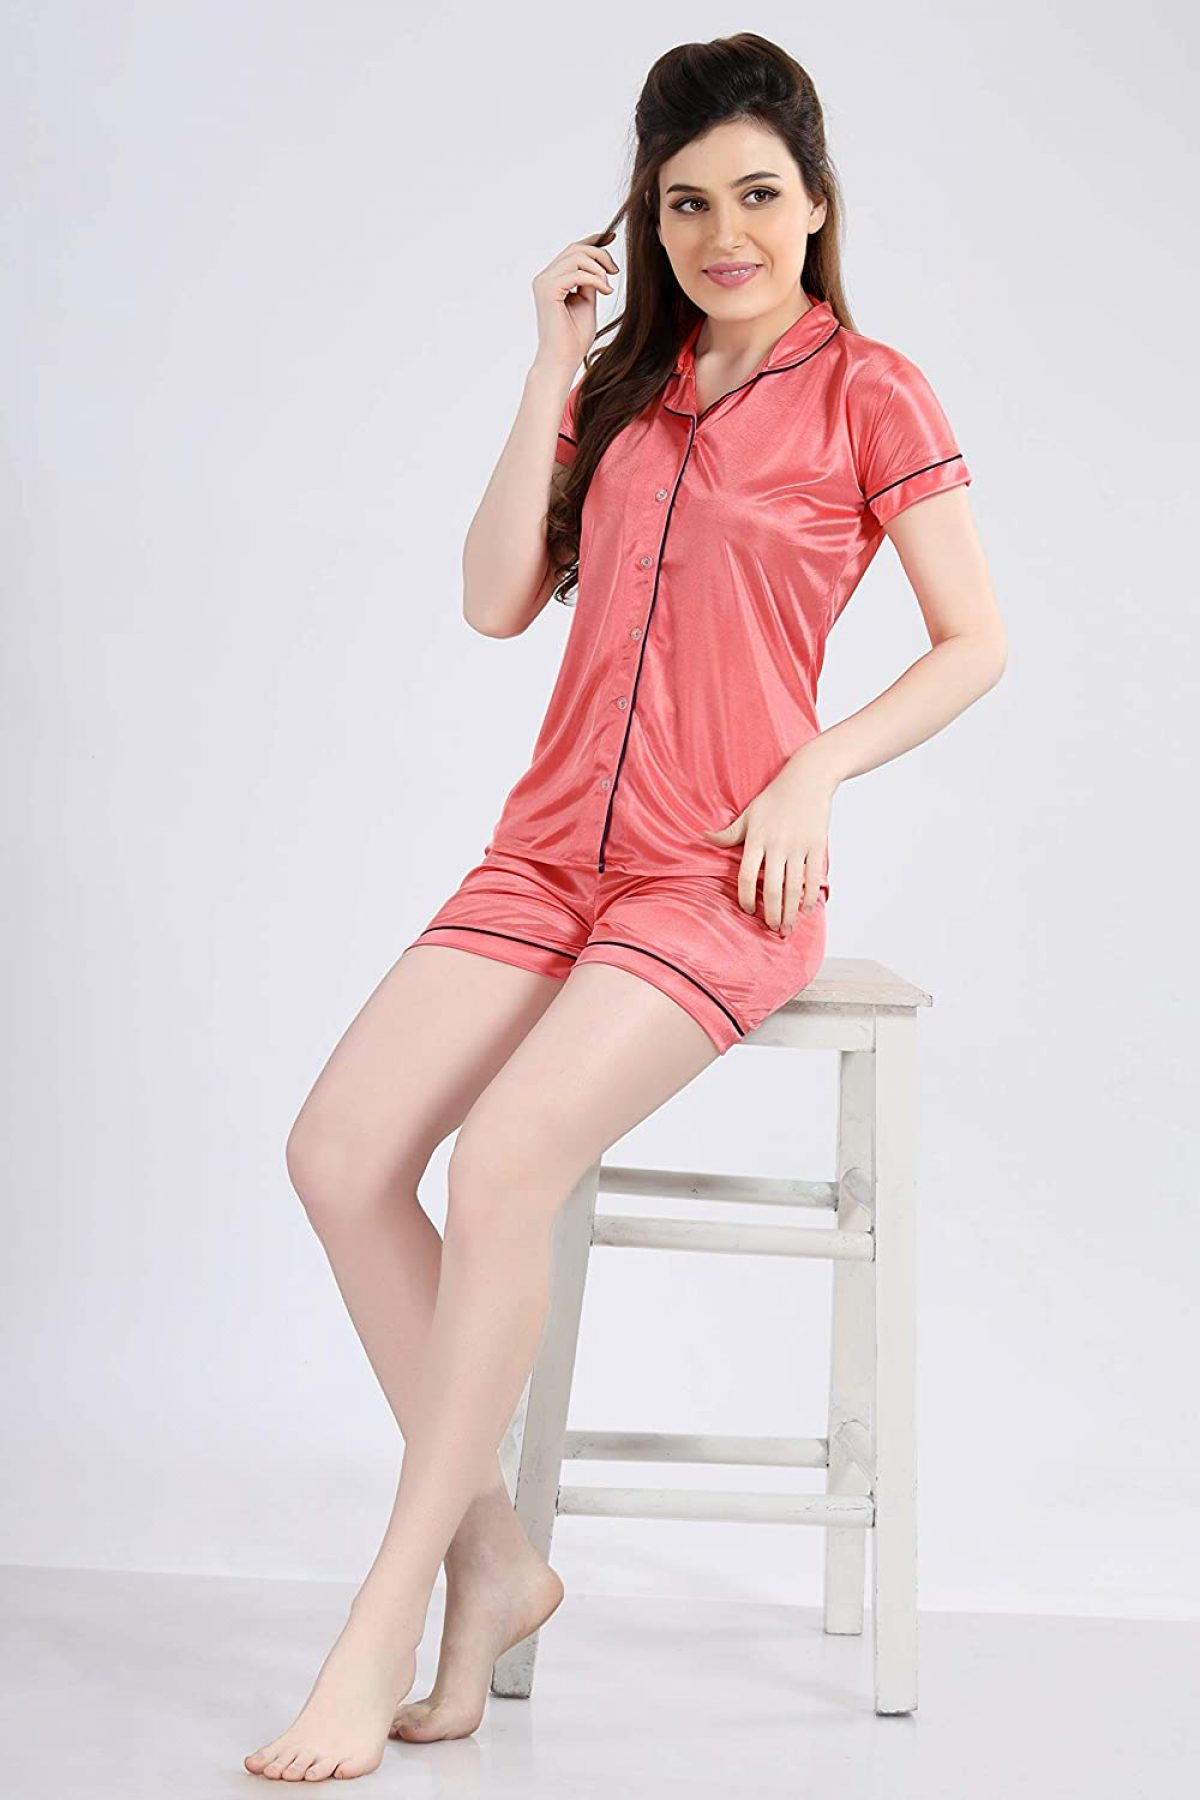 POUR FEMME Women Satin Short Sleeve Top and Shorts Nightsuit Set0187